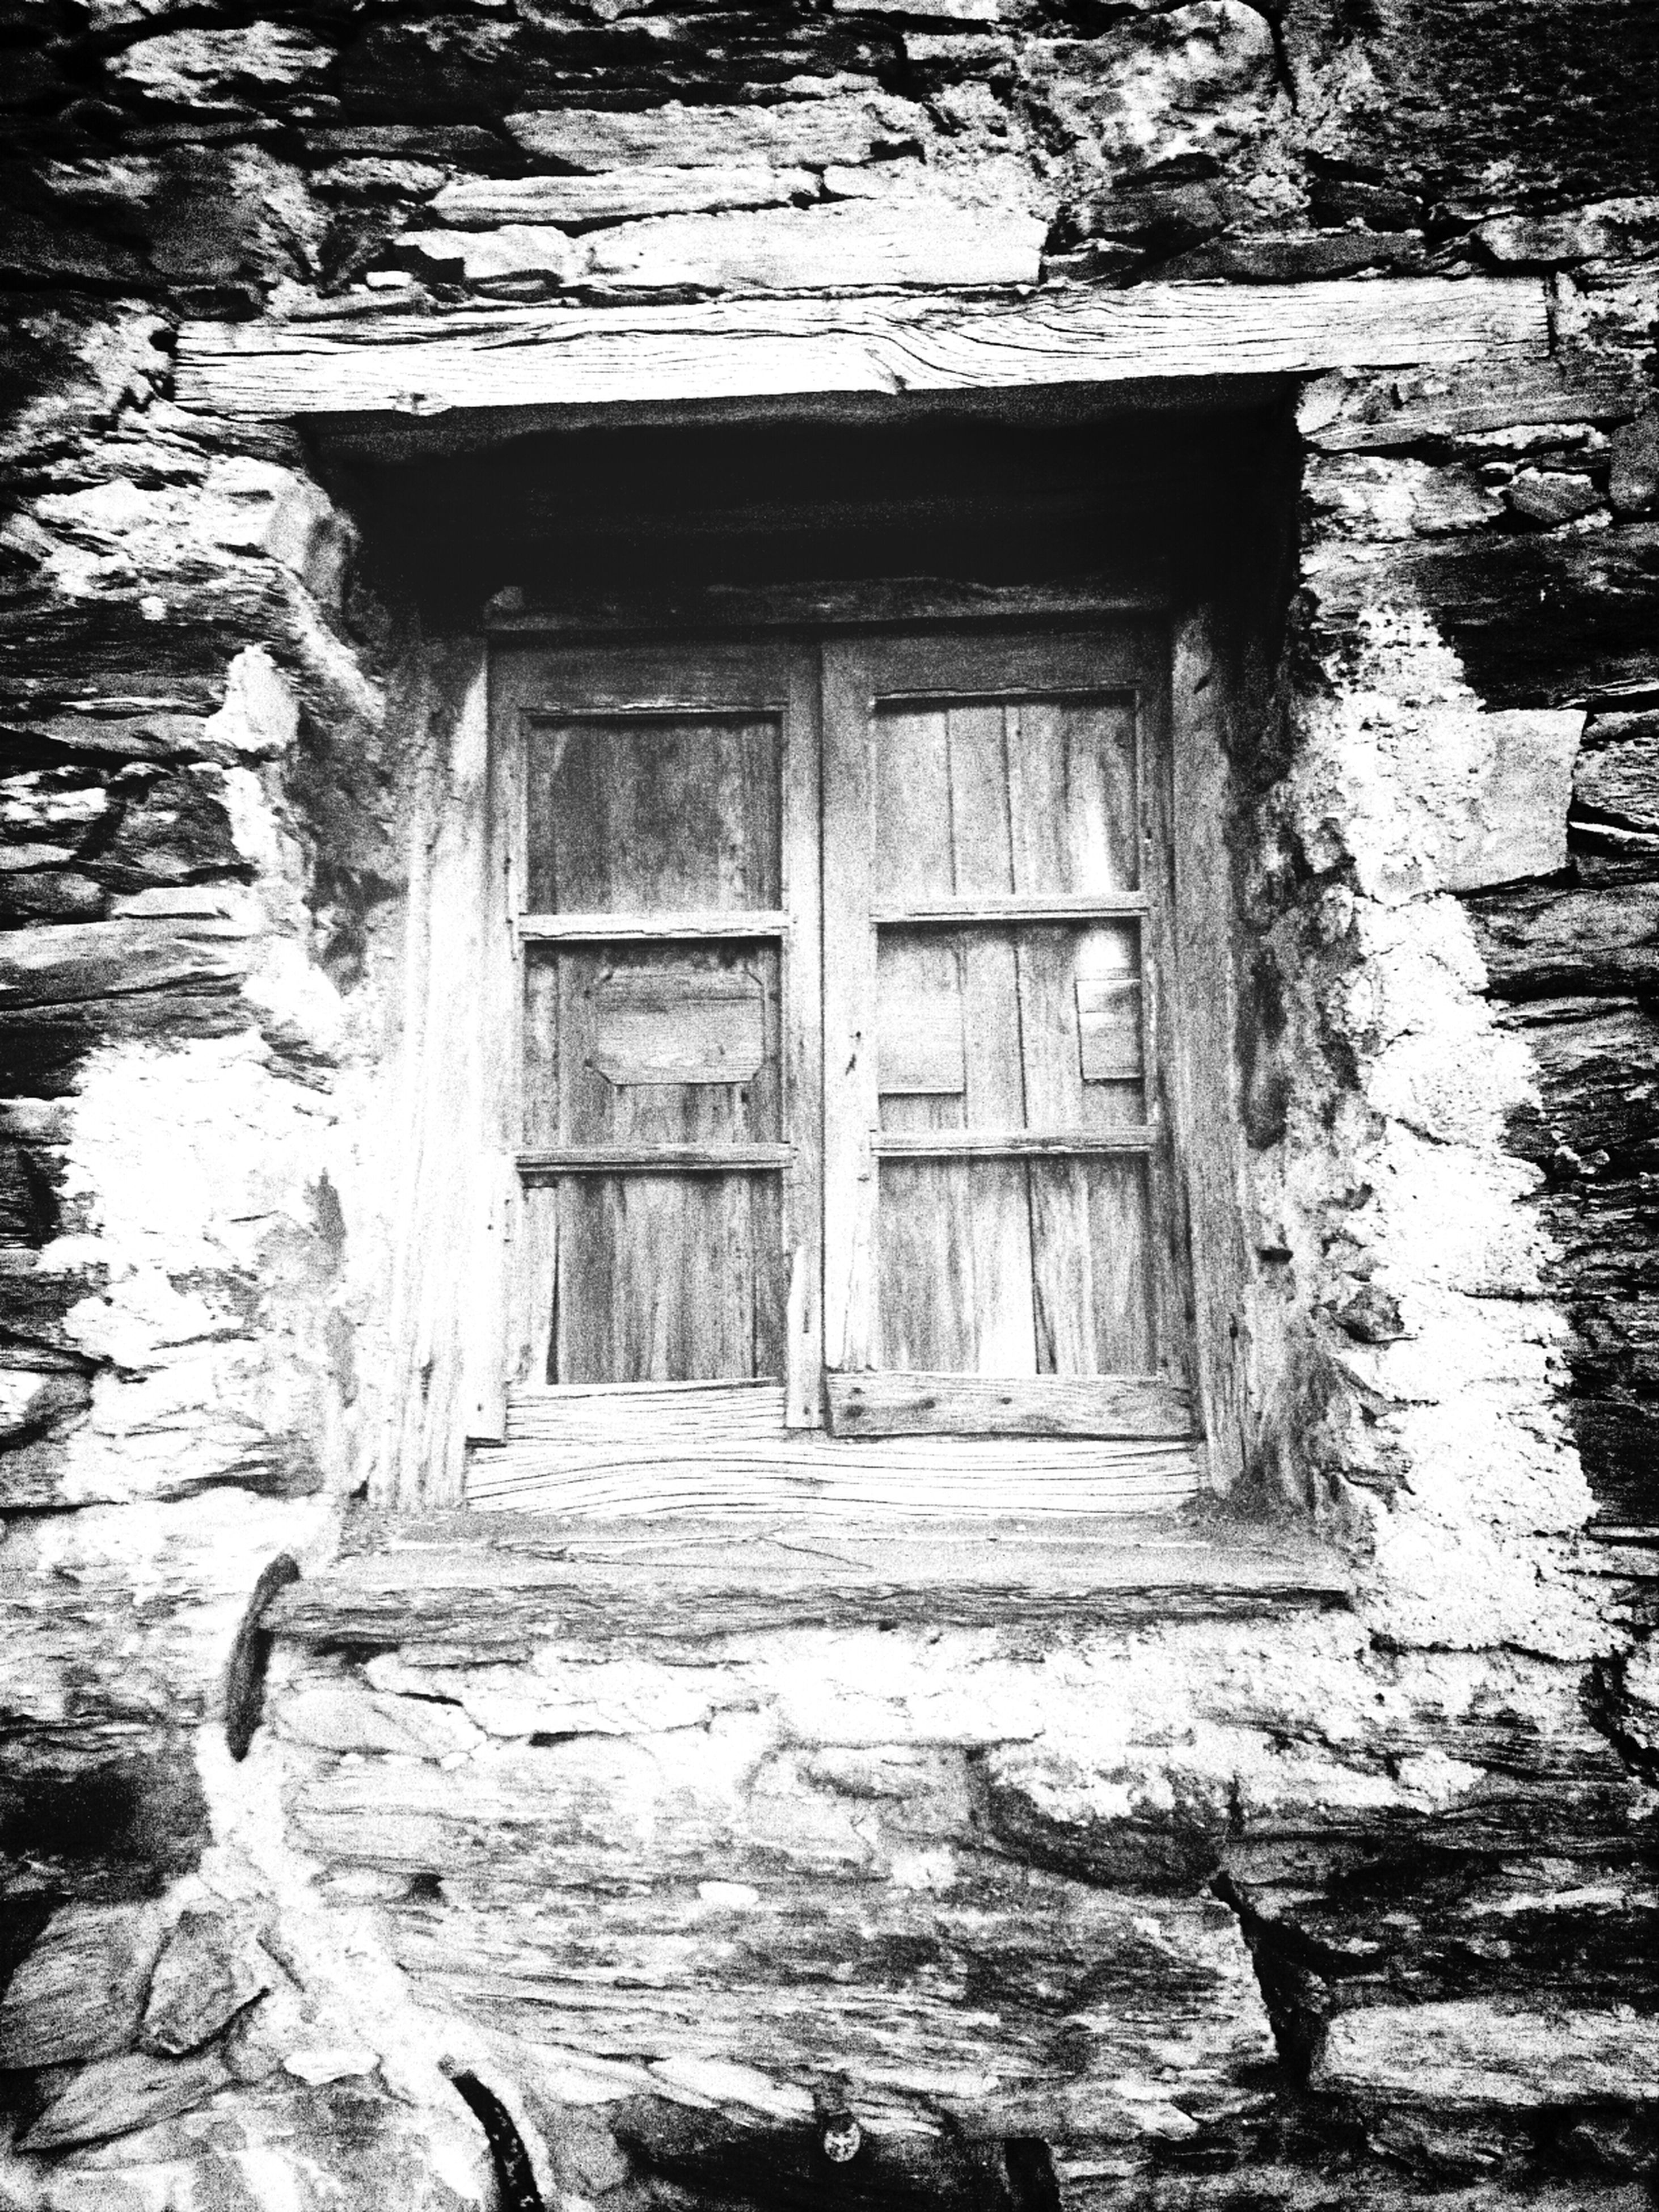 architecture, built structure, building exterior, house, door, window, abandoned, old, weathered, damaged, residential structure, obsolete, wood - material, entrance, closed, deterioration, day, wall - building feature, residential building, run-down